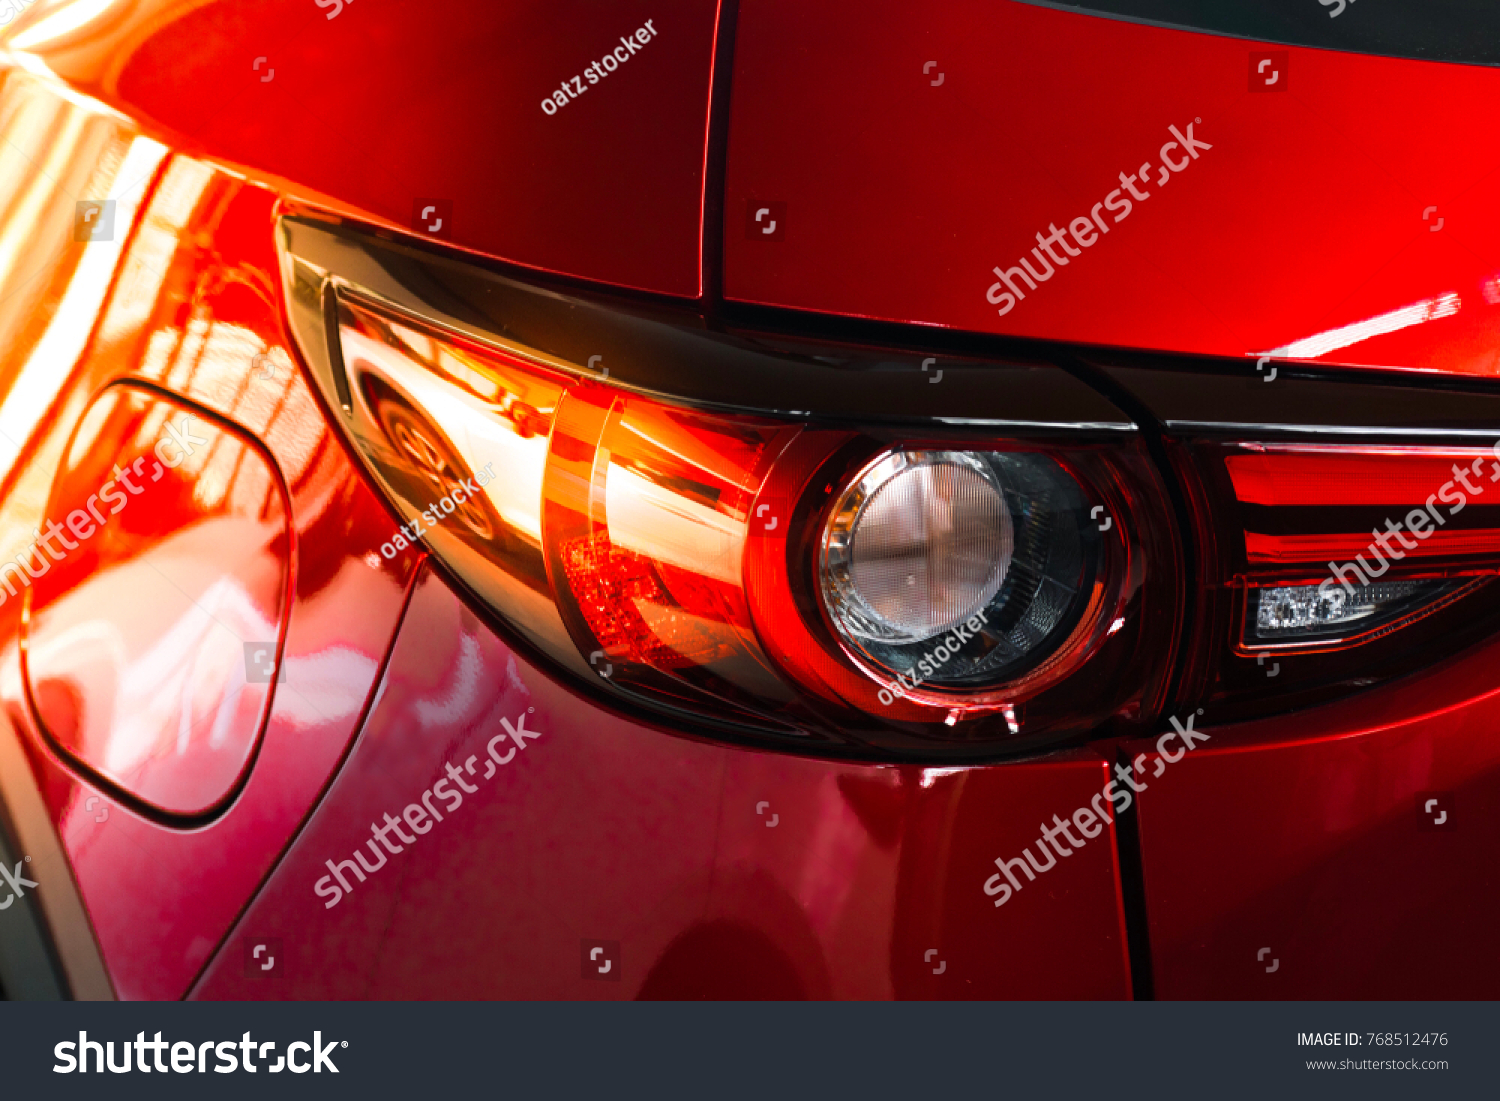 Car Tail Light Red Color Customers Stock Photo & Image (Royalty-Free ...